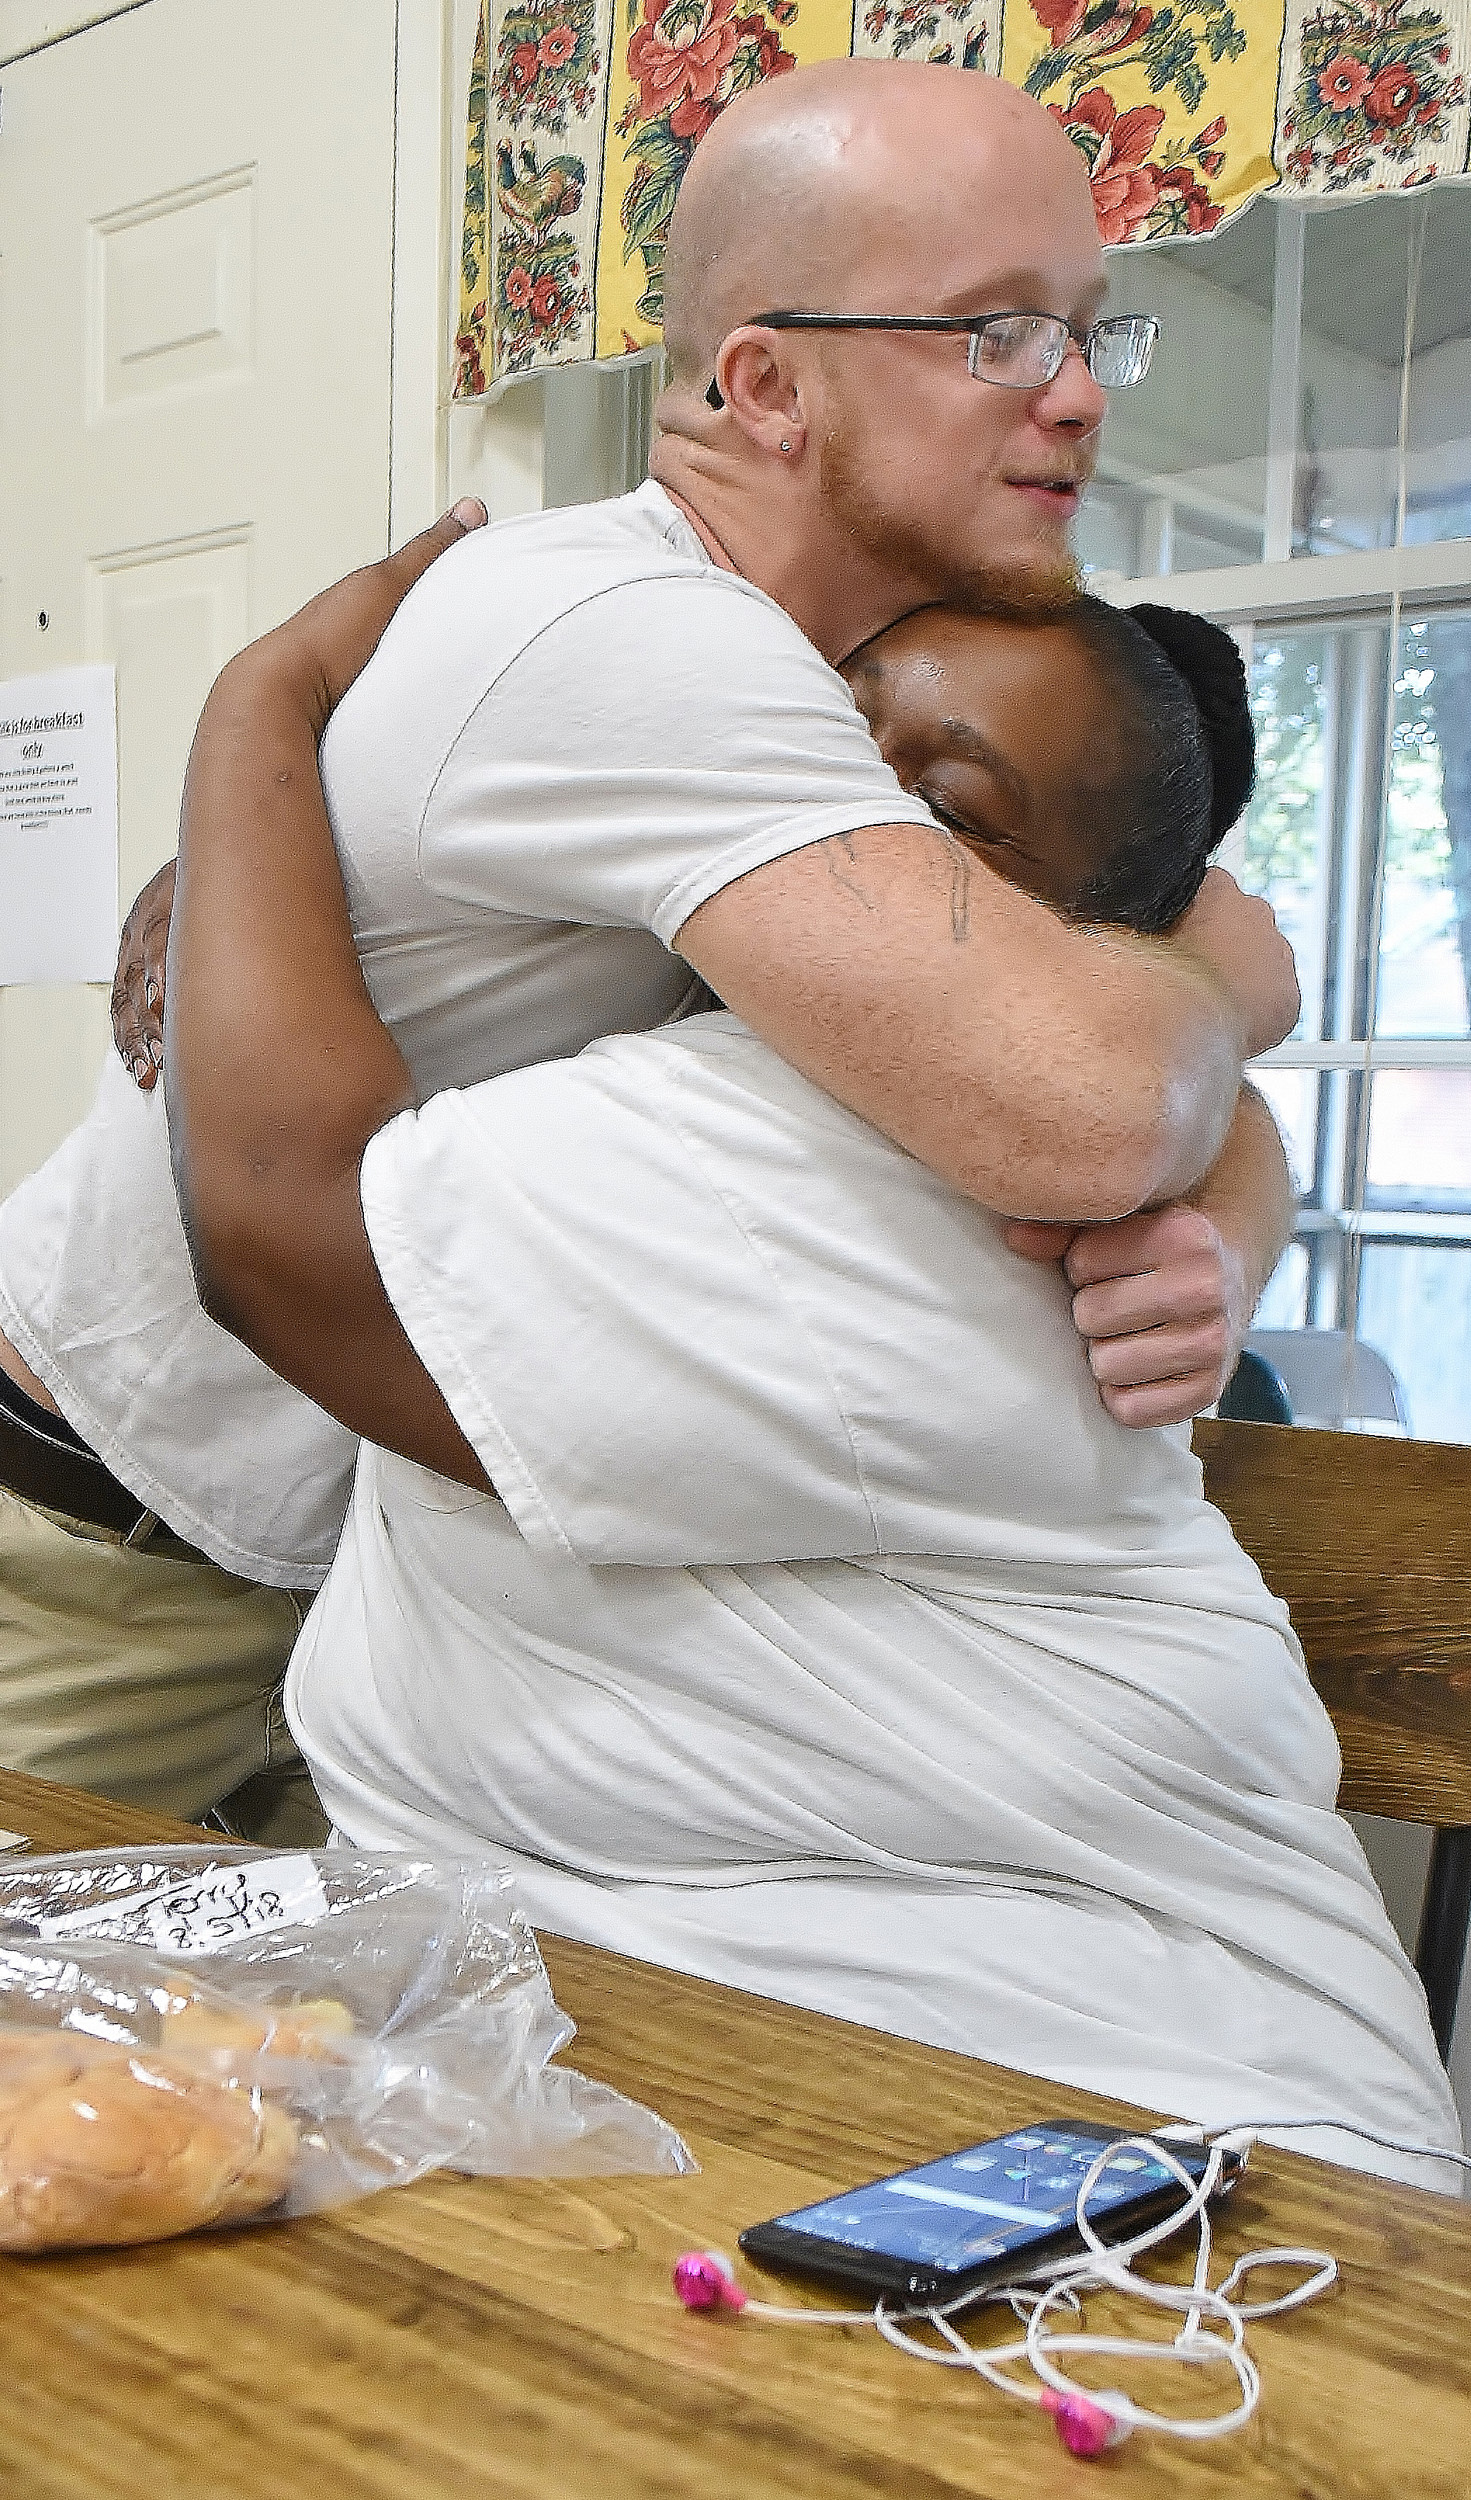 Terry, seated, a guest at the Good Neighbor Homeless Shelter in Cartersville, gets a hug from fellow guest, Bradley.